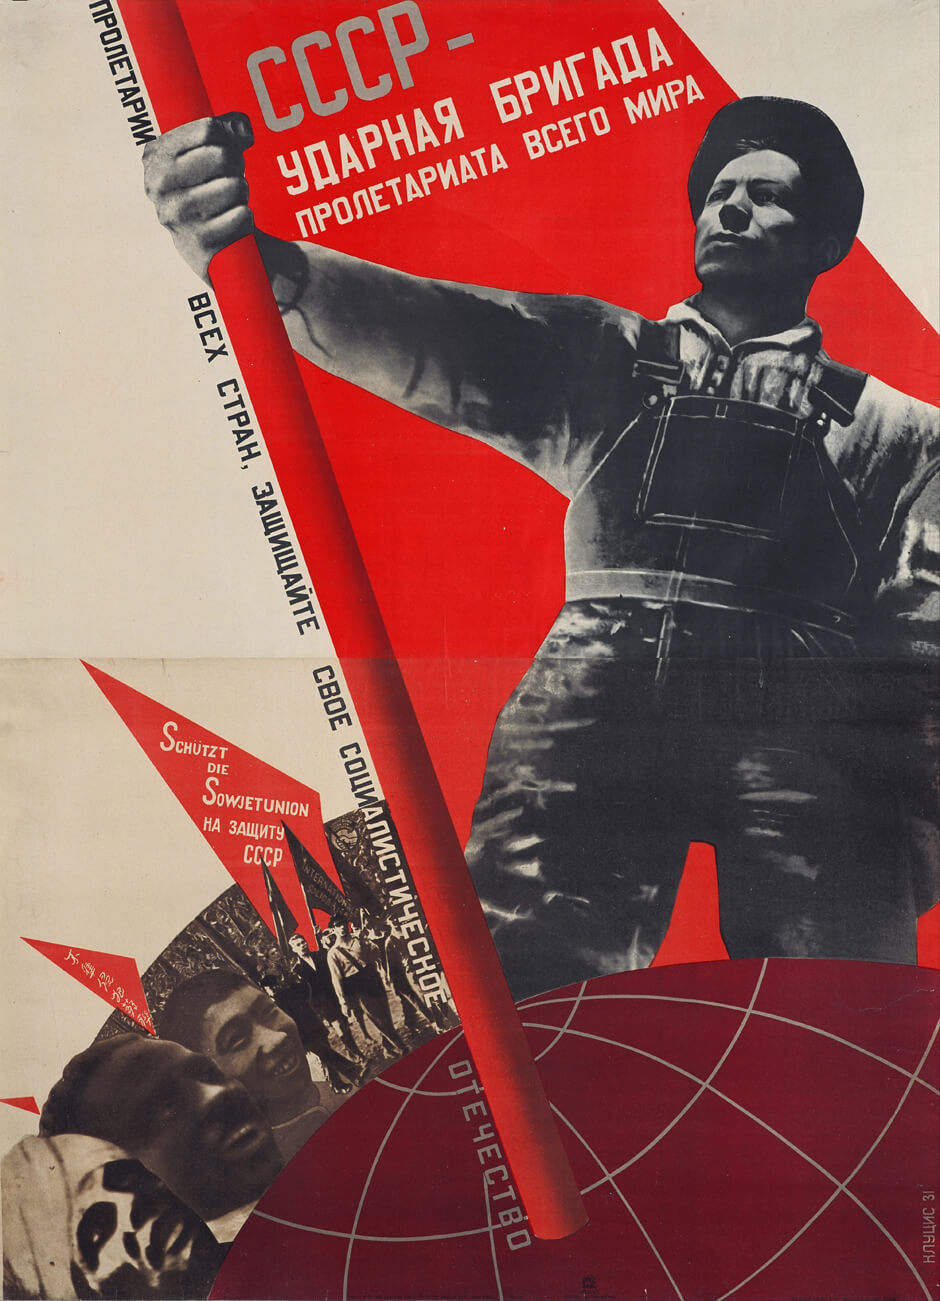 Art Canada Institute, Gustav Klutsis, U.S.S.R. Shock Brigade of the World Proletariat, 1931